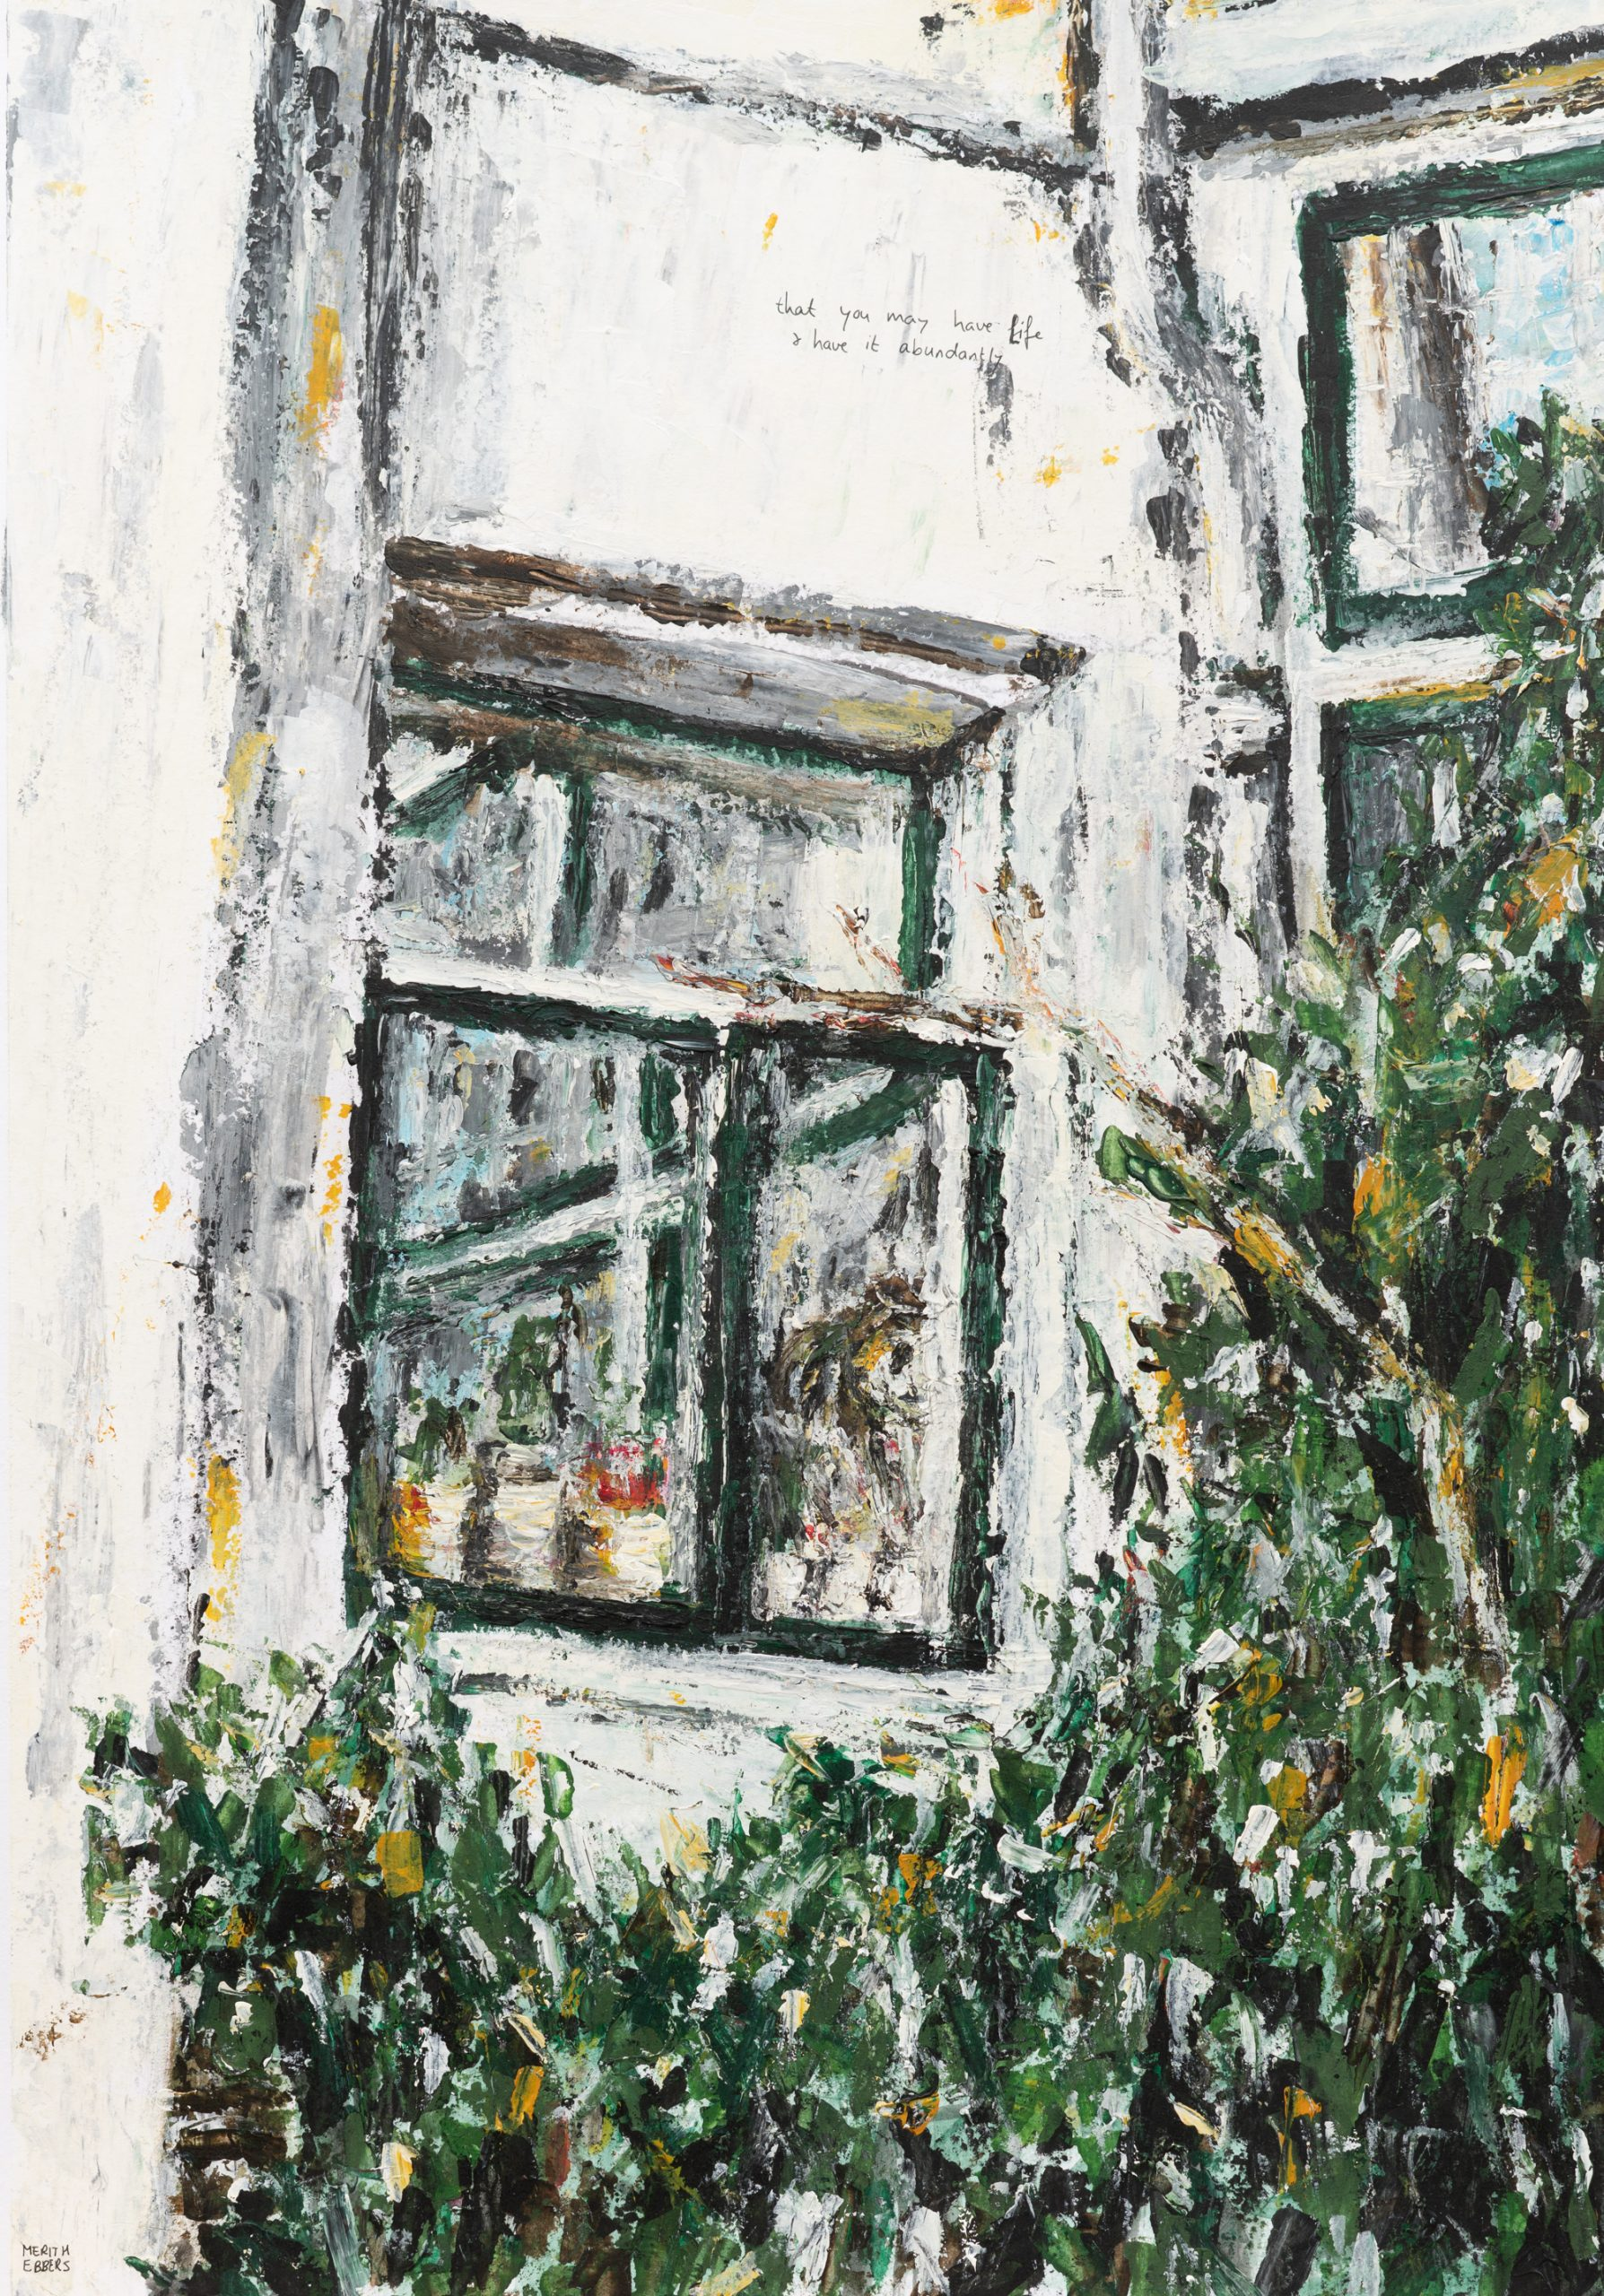 """An acrylic painting of a white house. You see the kitchen window and the reflection of another part of the house in the window. There is a green bush growing in front of the house. In small letter is written on the house: """"That you may have live and have it abundantly"""""""